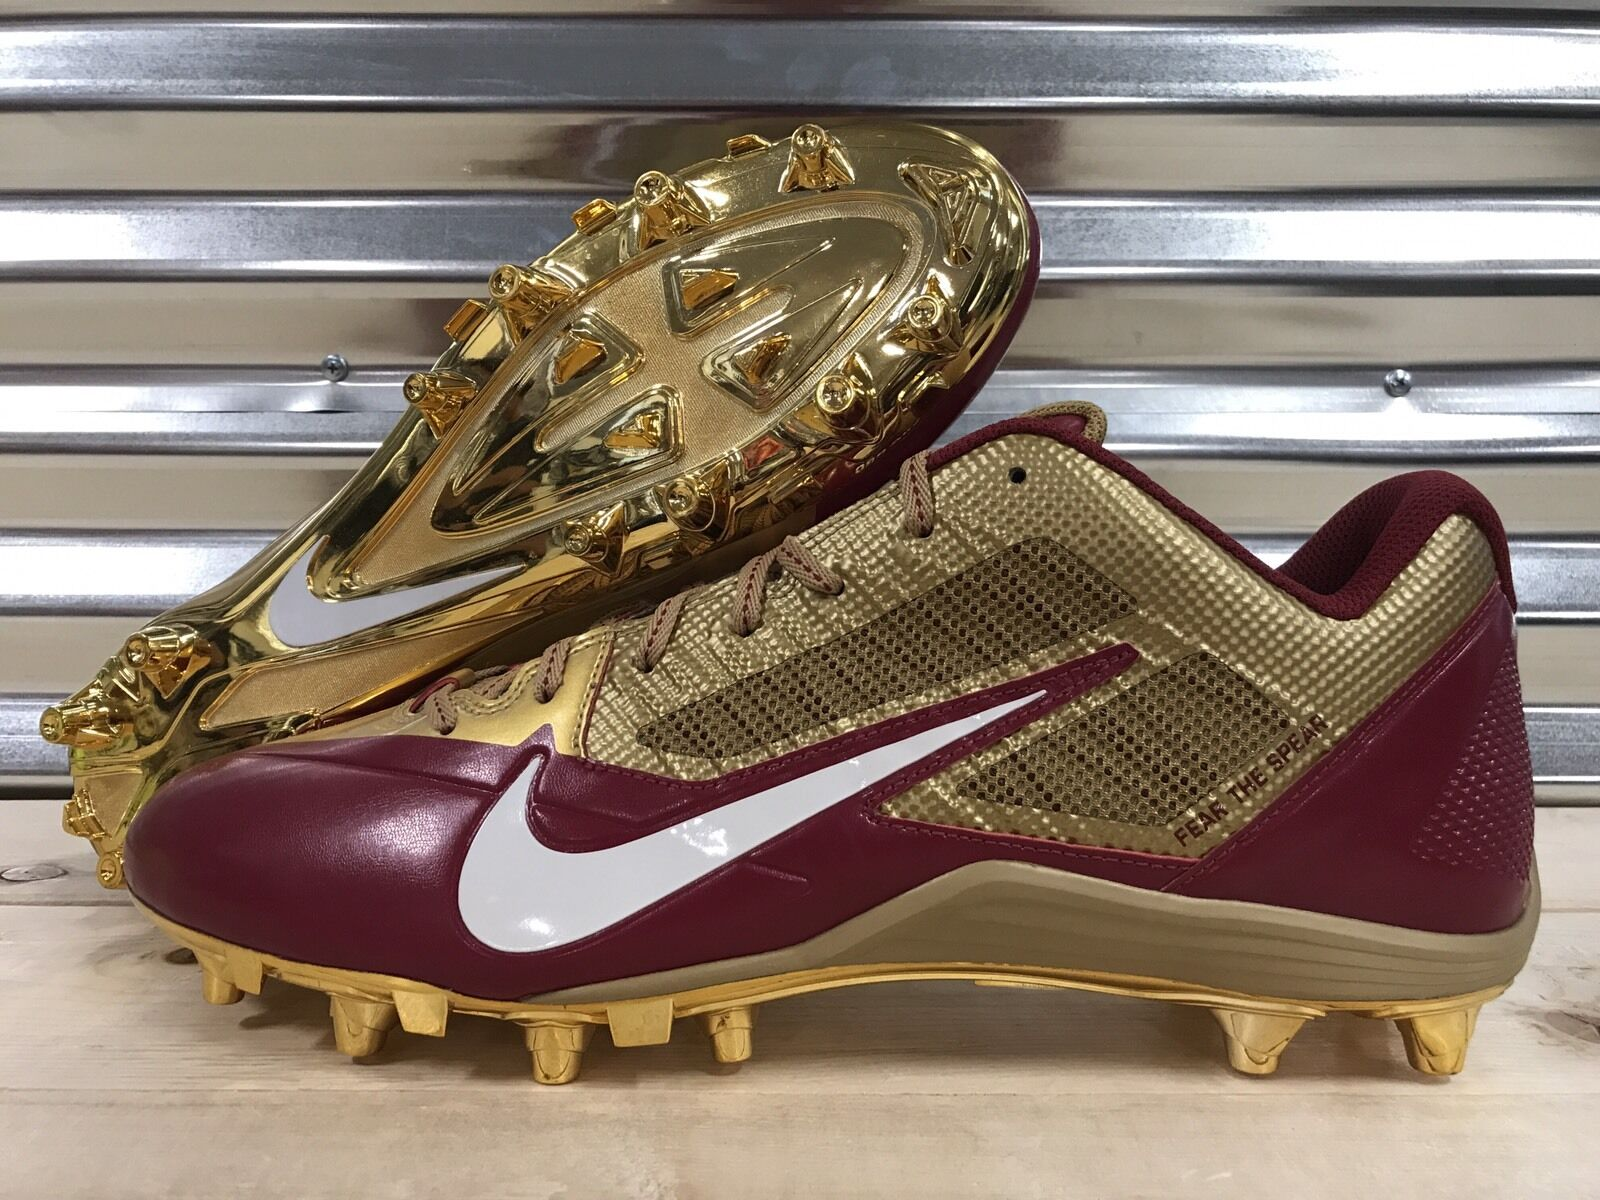 Nike Alpha Pro Low TD FSU Football Cleats Florida State Seminoles Sample SZ 16